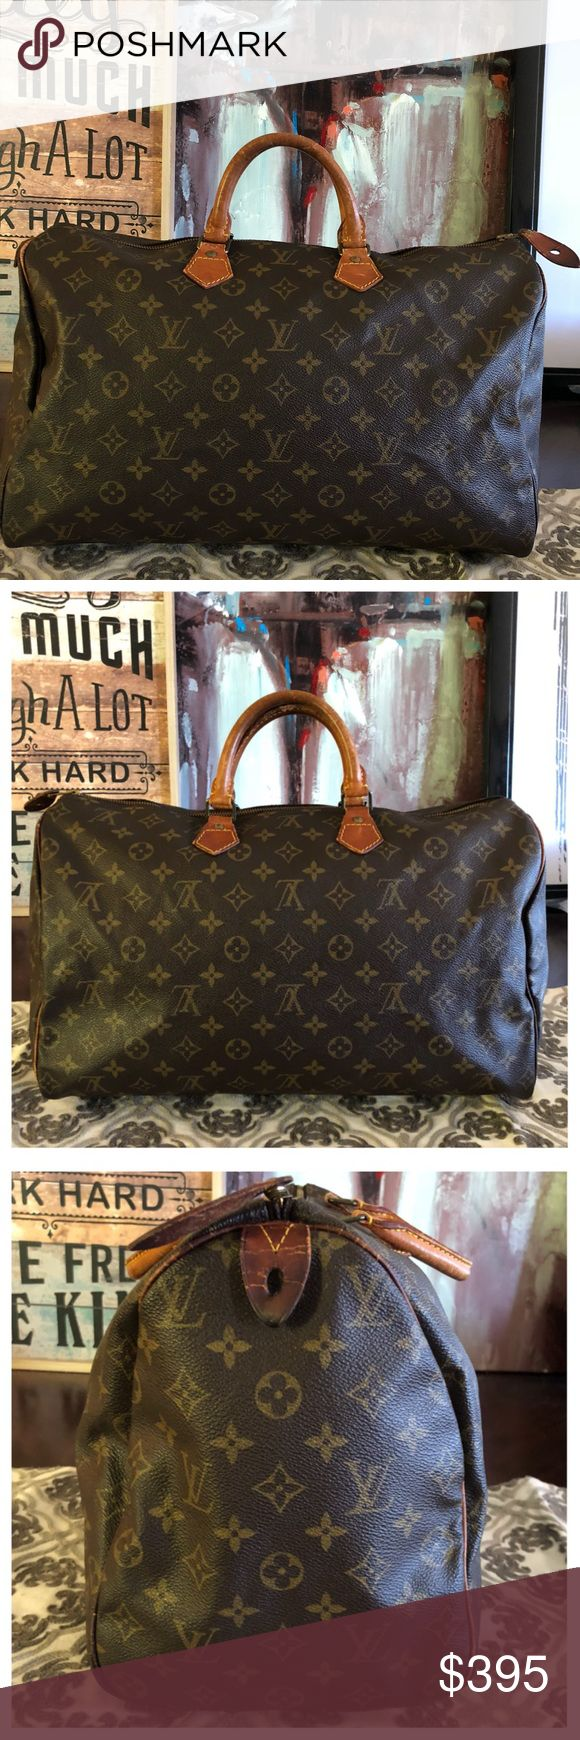 """AUTHENTIC LOUIS VUITTON SPEEDY 40 100% Authentic Louis Vuitton Speedy 40. The largest size. Perfect for traveling or every day use. Roomy. Monogram canvas has no scratches or tears. Handles show wear and scratches. Piping is good in corners 👍🏼Hardware has tarnished. Zipper works properly. Inside and pocket is in good condition. W15.7""""x H9.85""""xD7.48"""" Date code VI871 No trades Louis Vuitton Bags Satchels"""